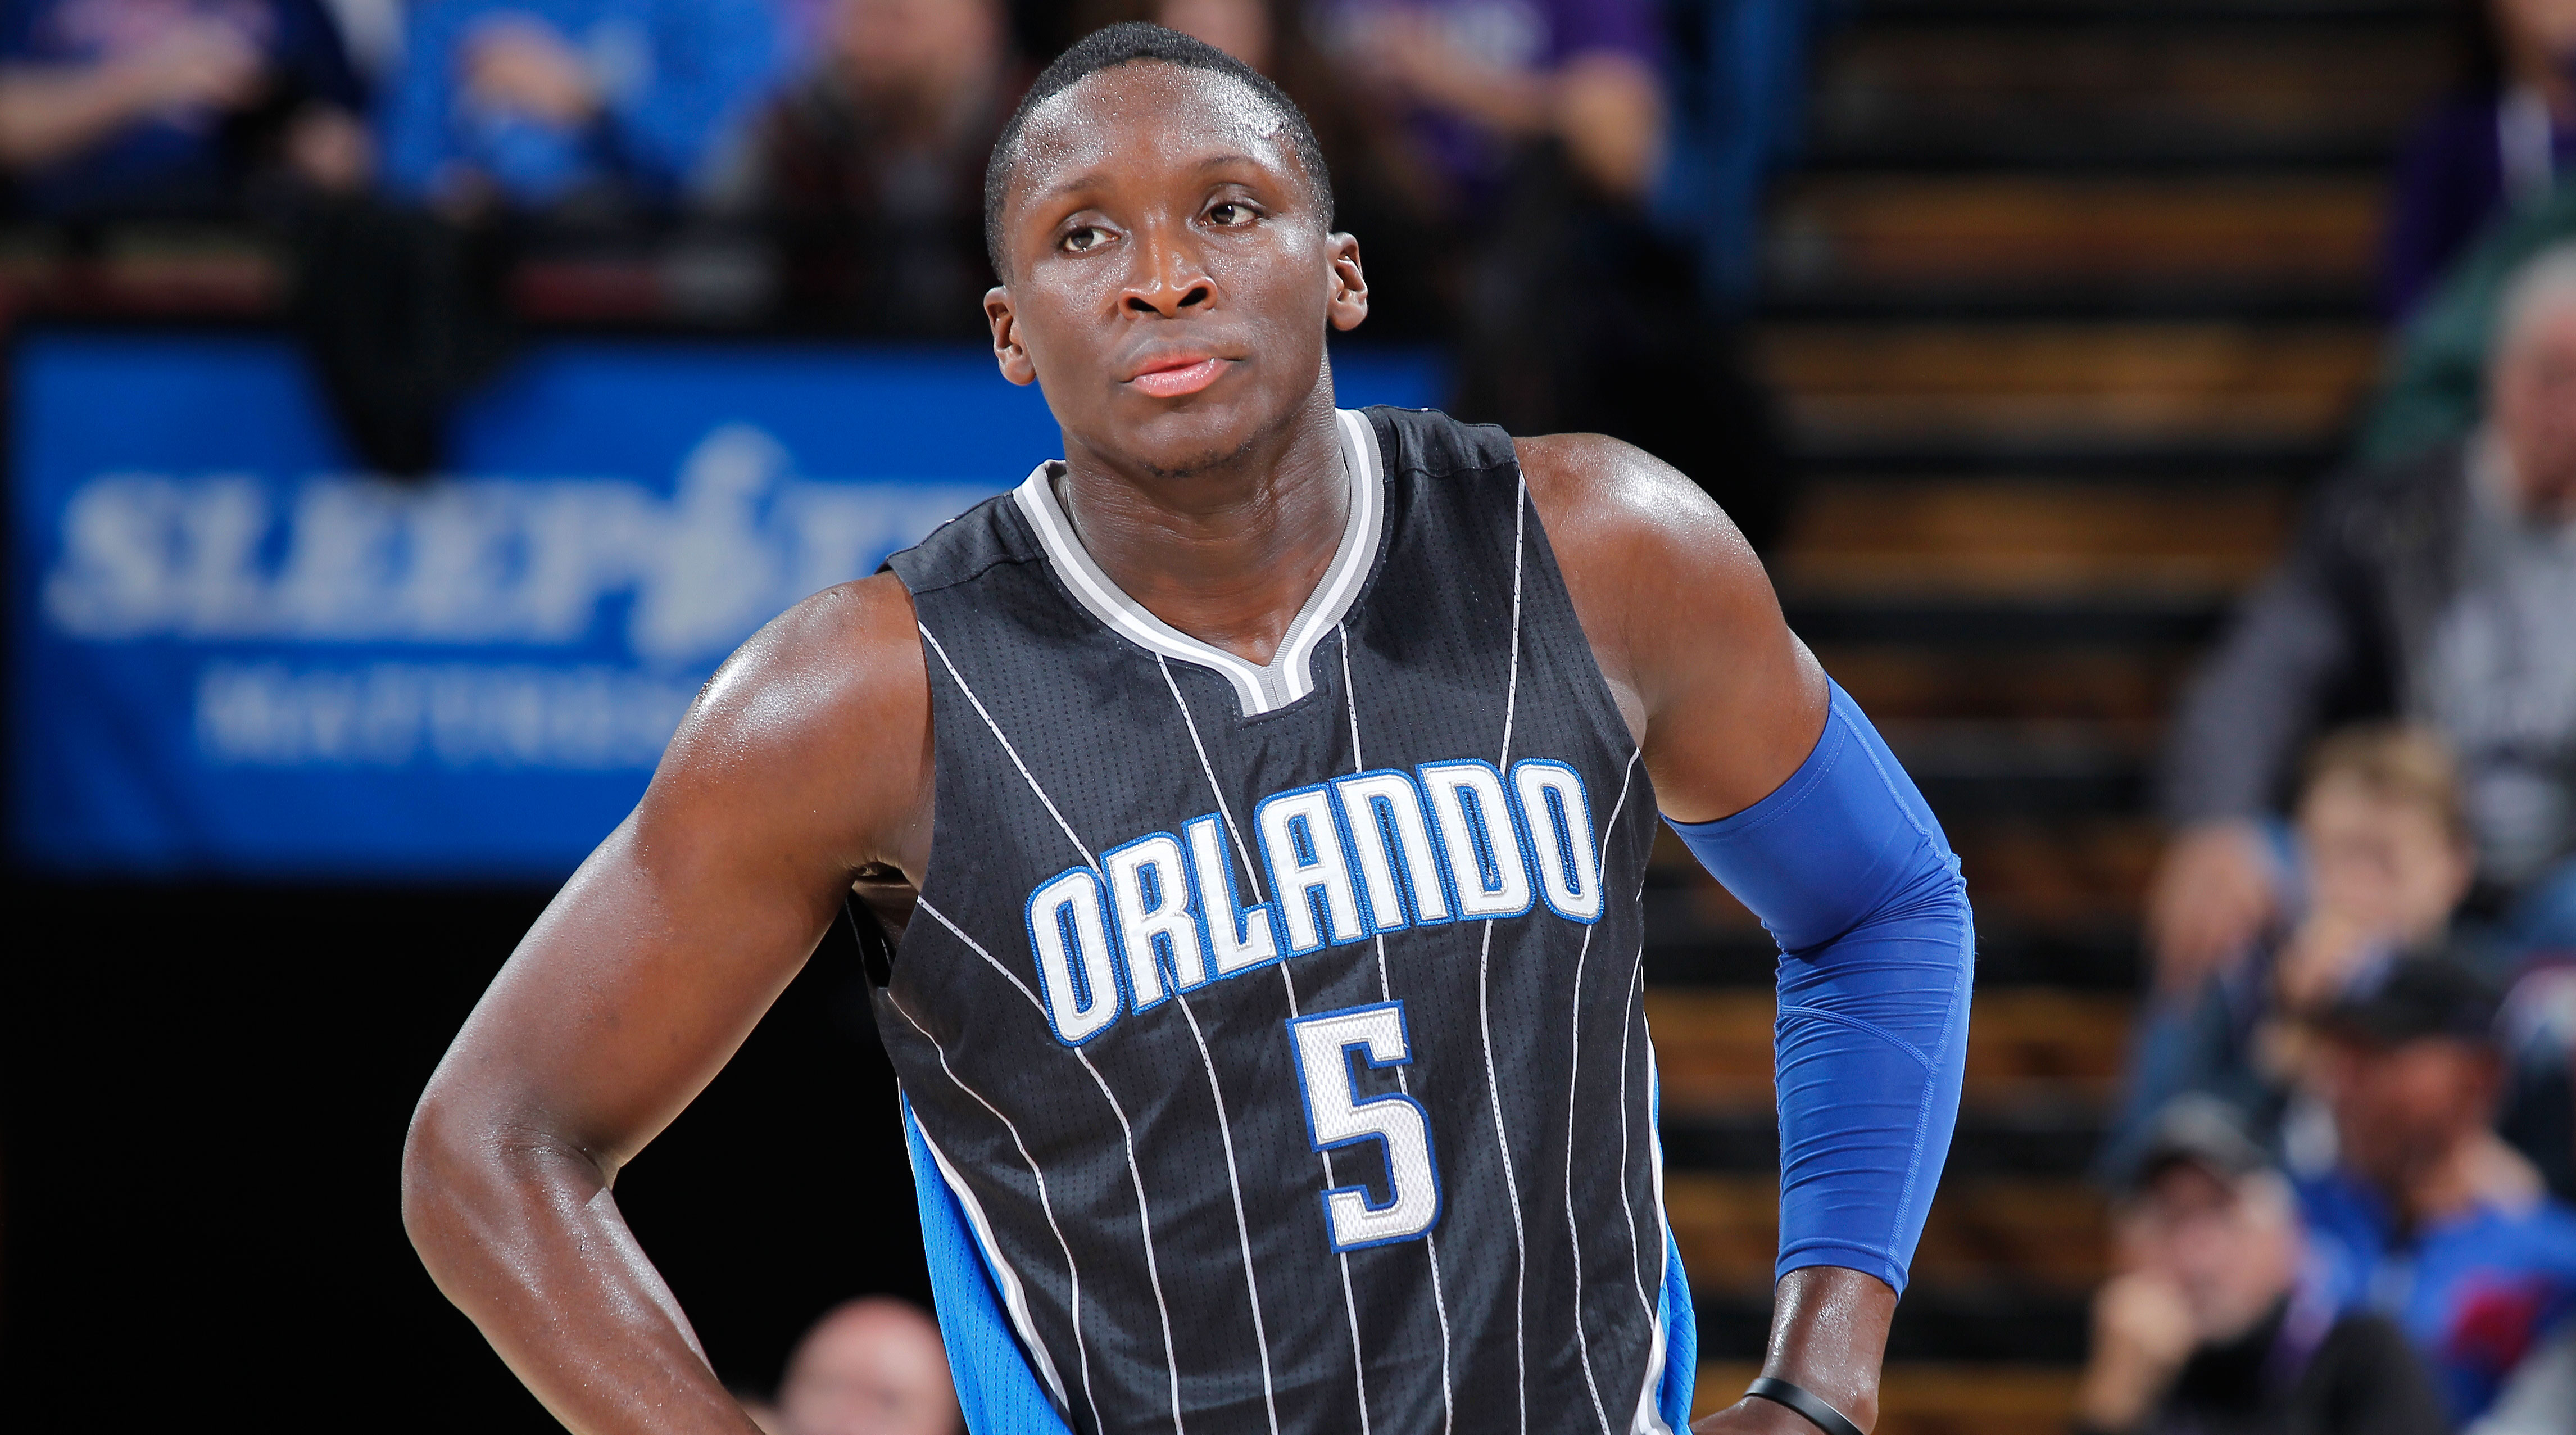 Thunder s Victor Oladipo on his Jordan shoe and Russell Westbrook ... 90f9e1fbacf3